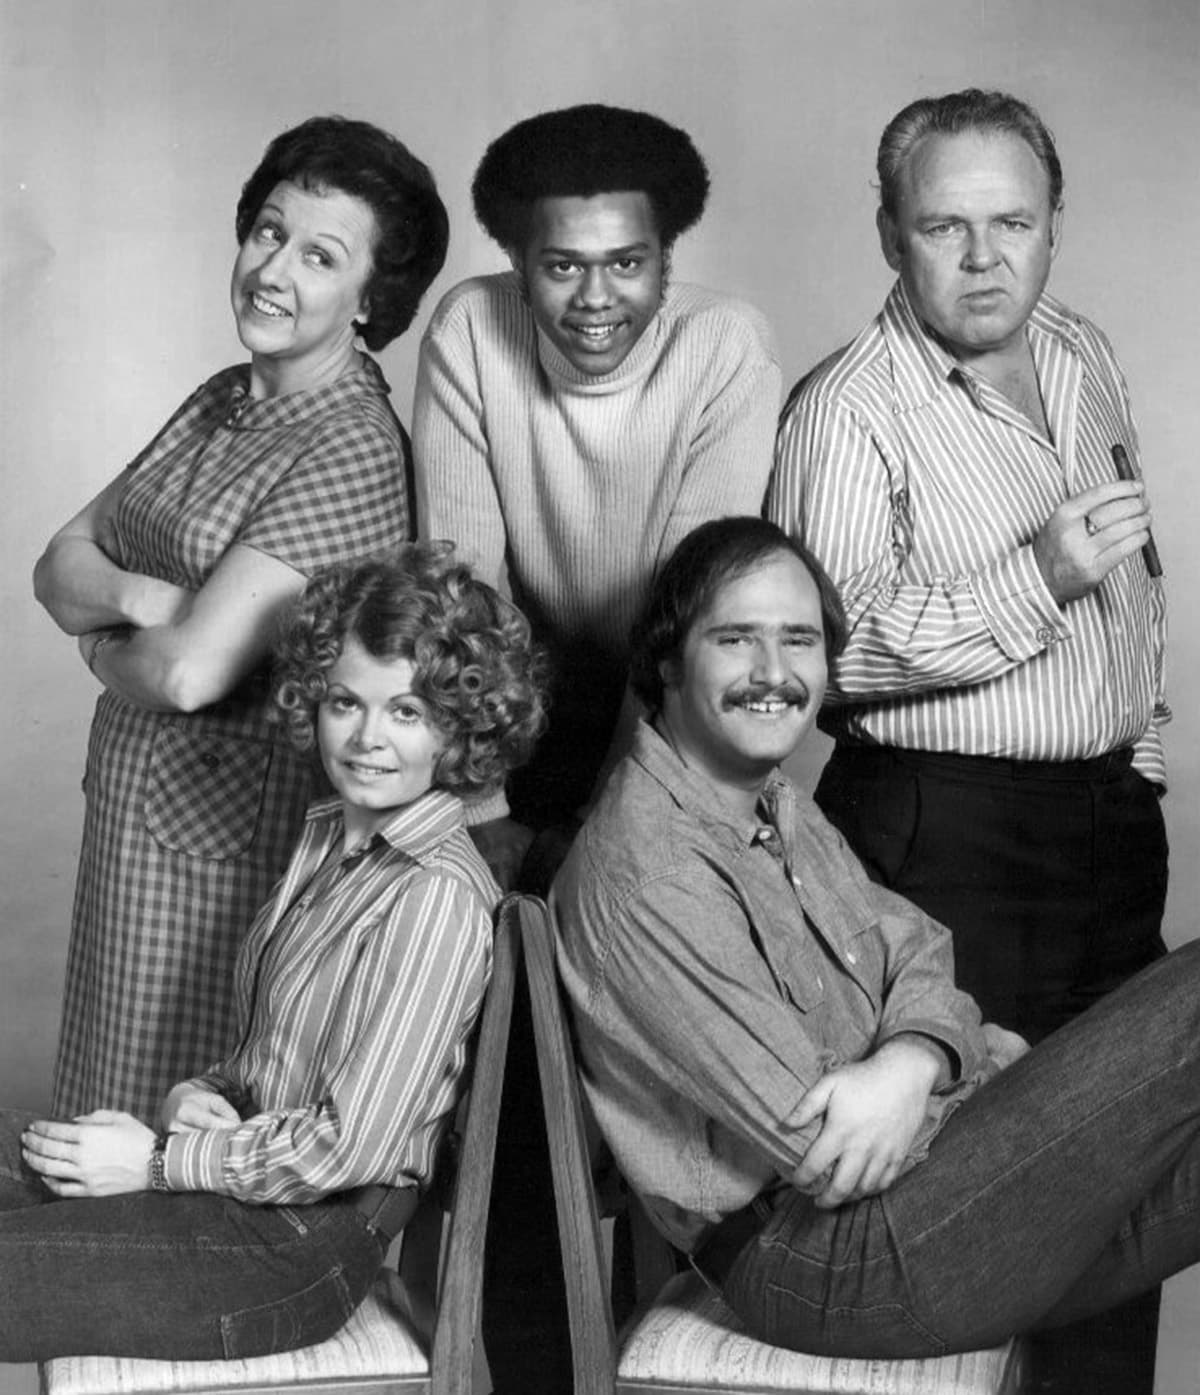 1973 - All in the Family cast